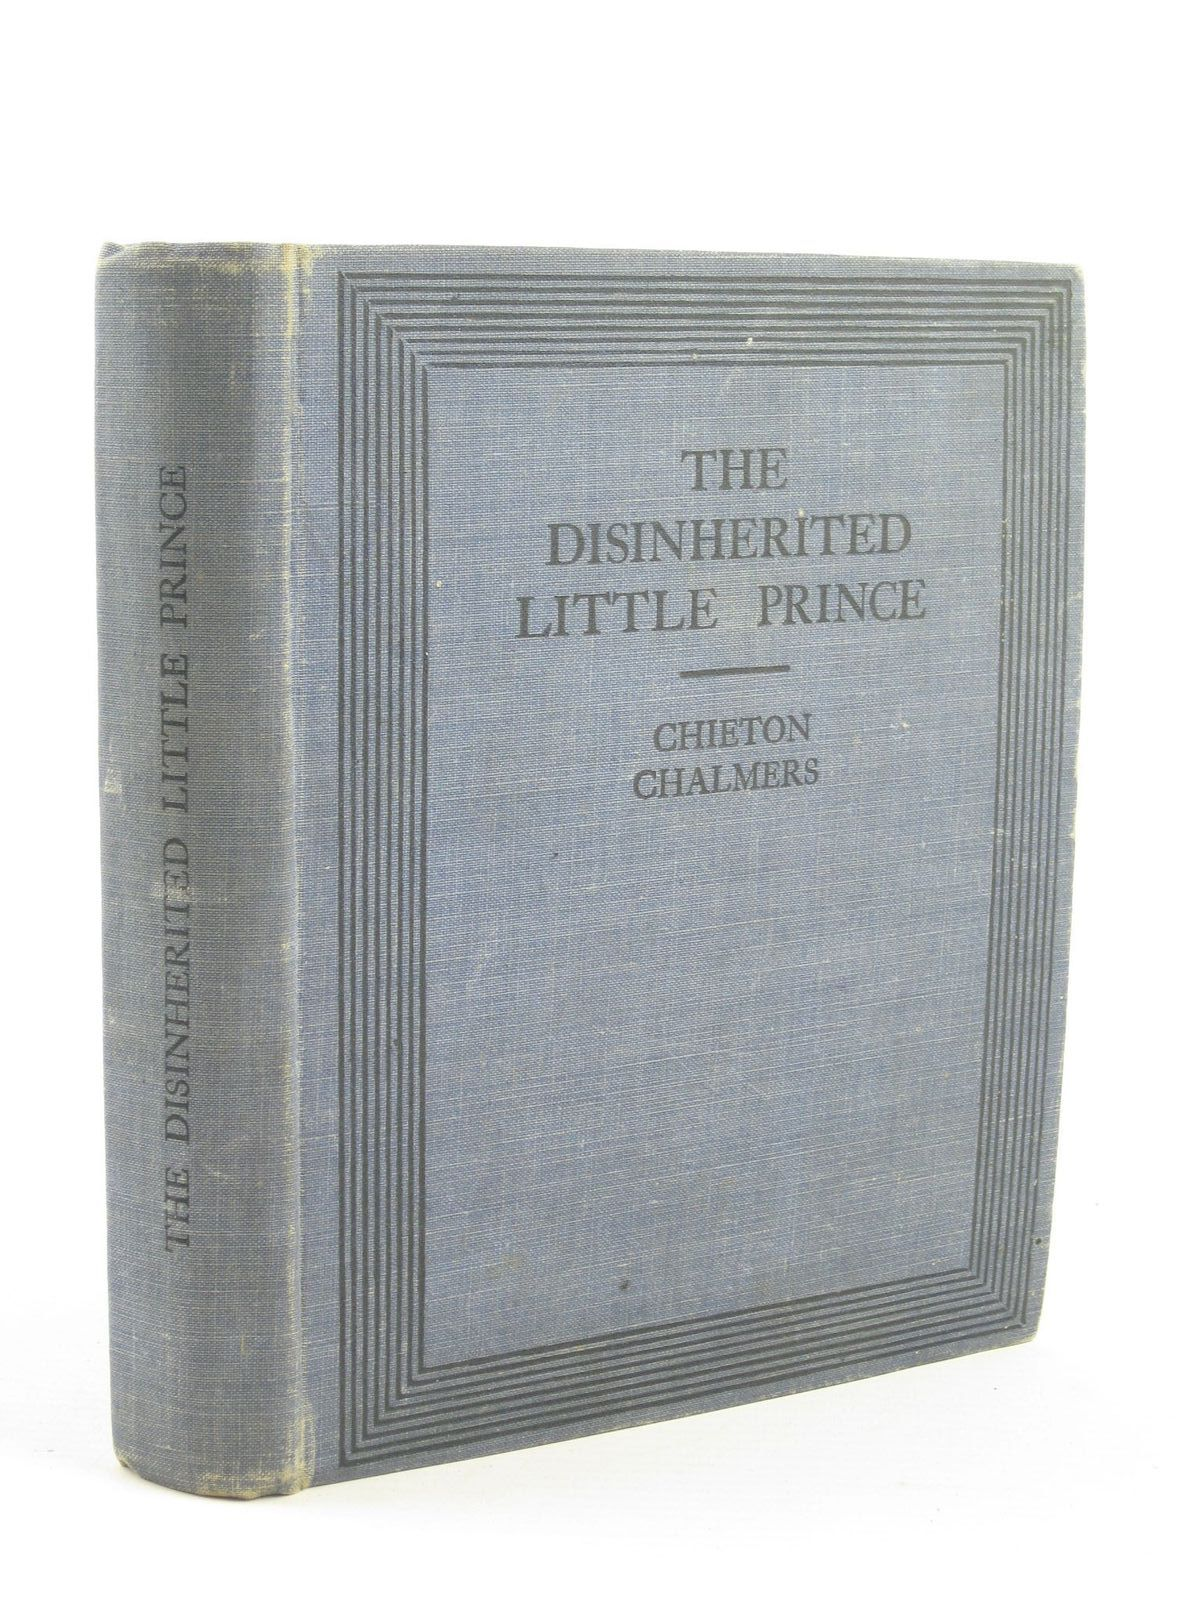 Photo of THE DISINHERITED LITTLE PRINCE written by Chalmers, Chieton published by Wells Gardner, Darton & Co. Ltd. (STOCK CODE: 1501548)  for sale by Stella & Rose's Books